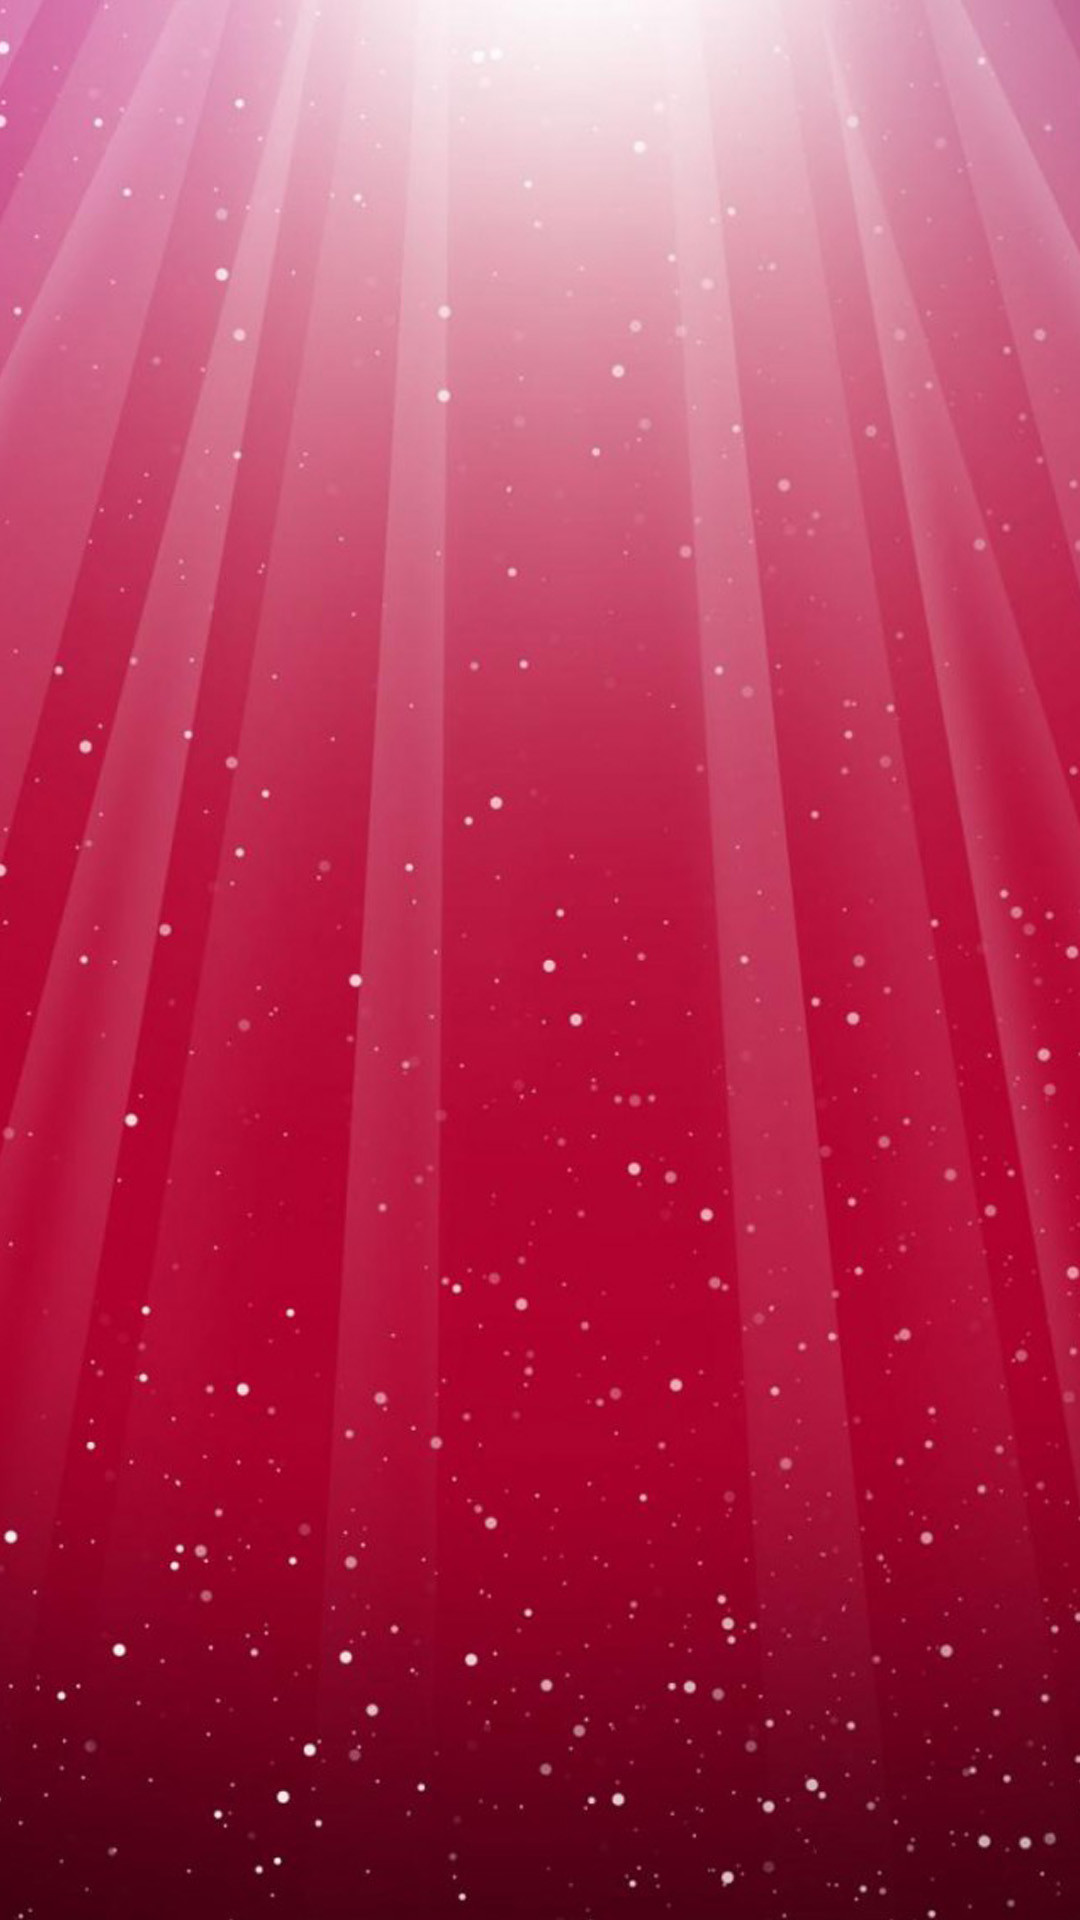 Abstract Shine Light Beam Pink Flare iPhone 6 wallpaper